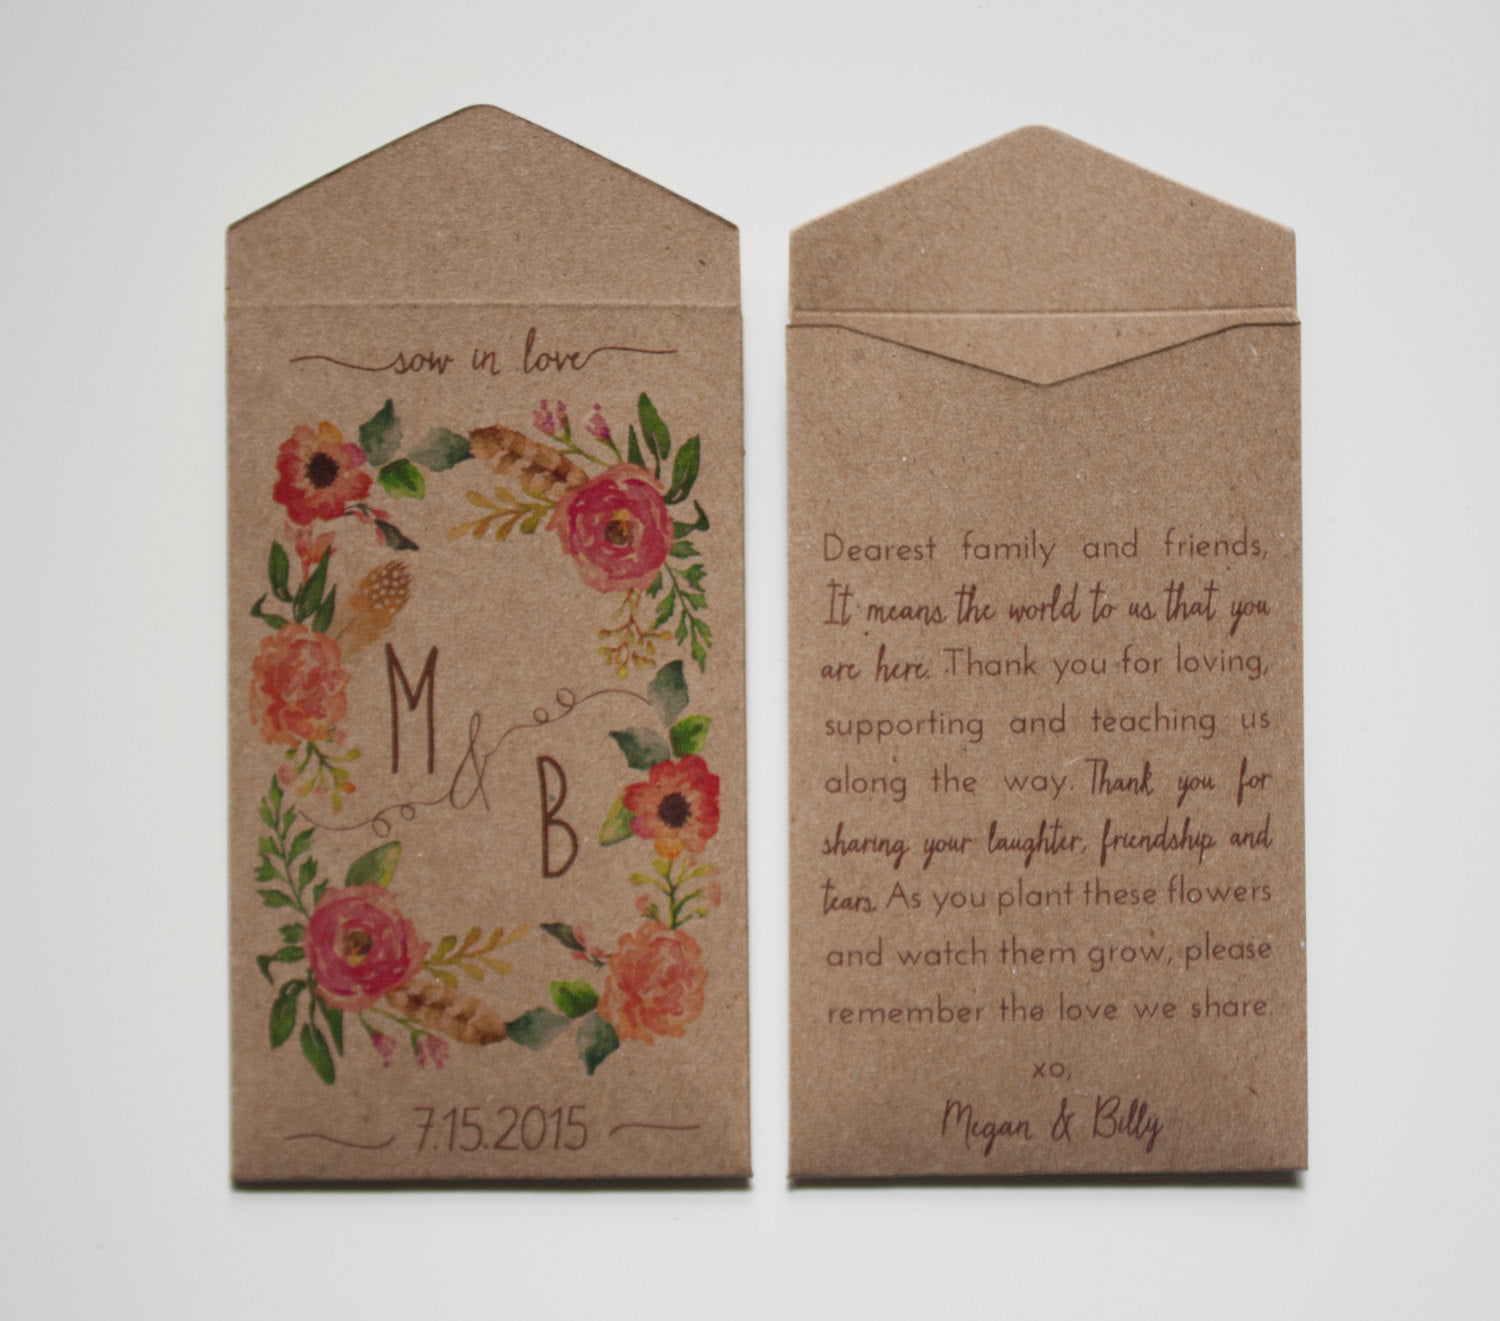 Let Love Grow Custom Rustic Wedding Favor Seed Packet Envelopes - Kraft Seed Packet Wedding Favor - Wedding Shower - Many Colors Available